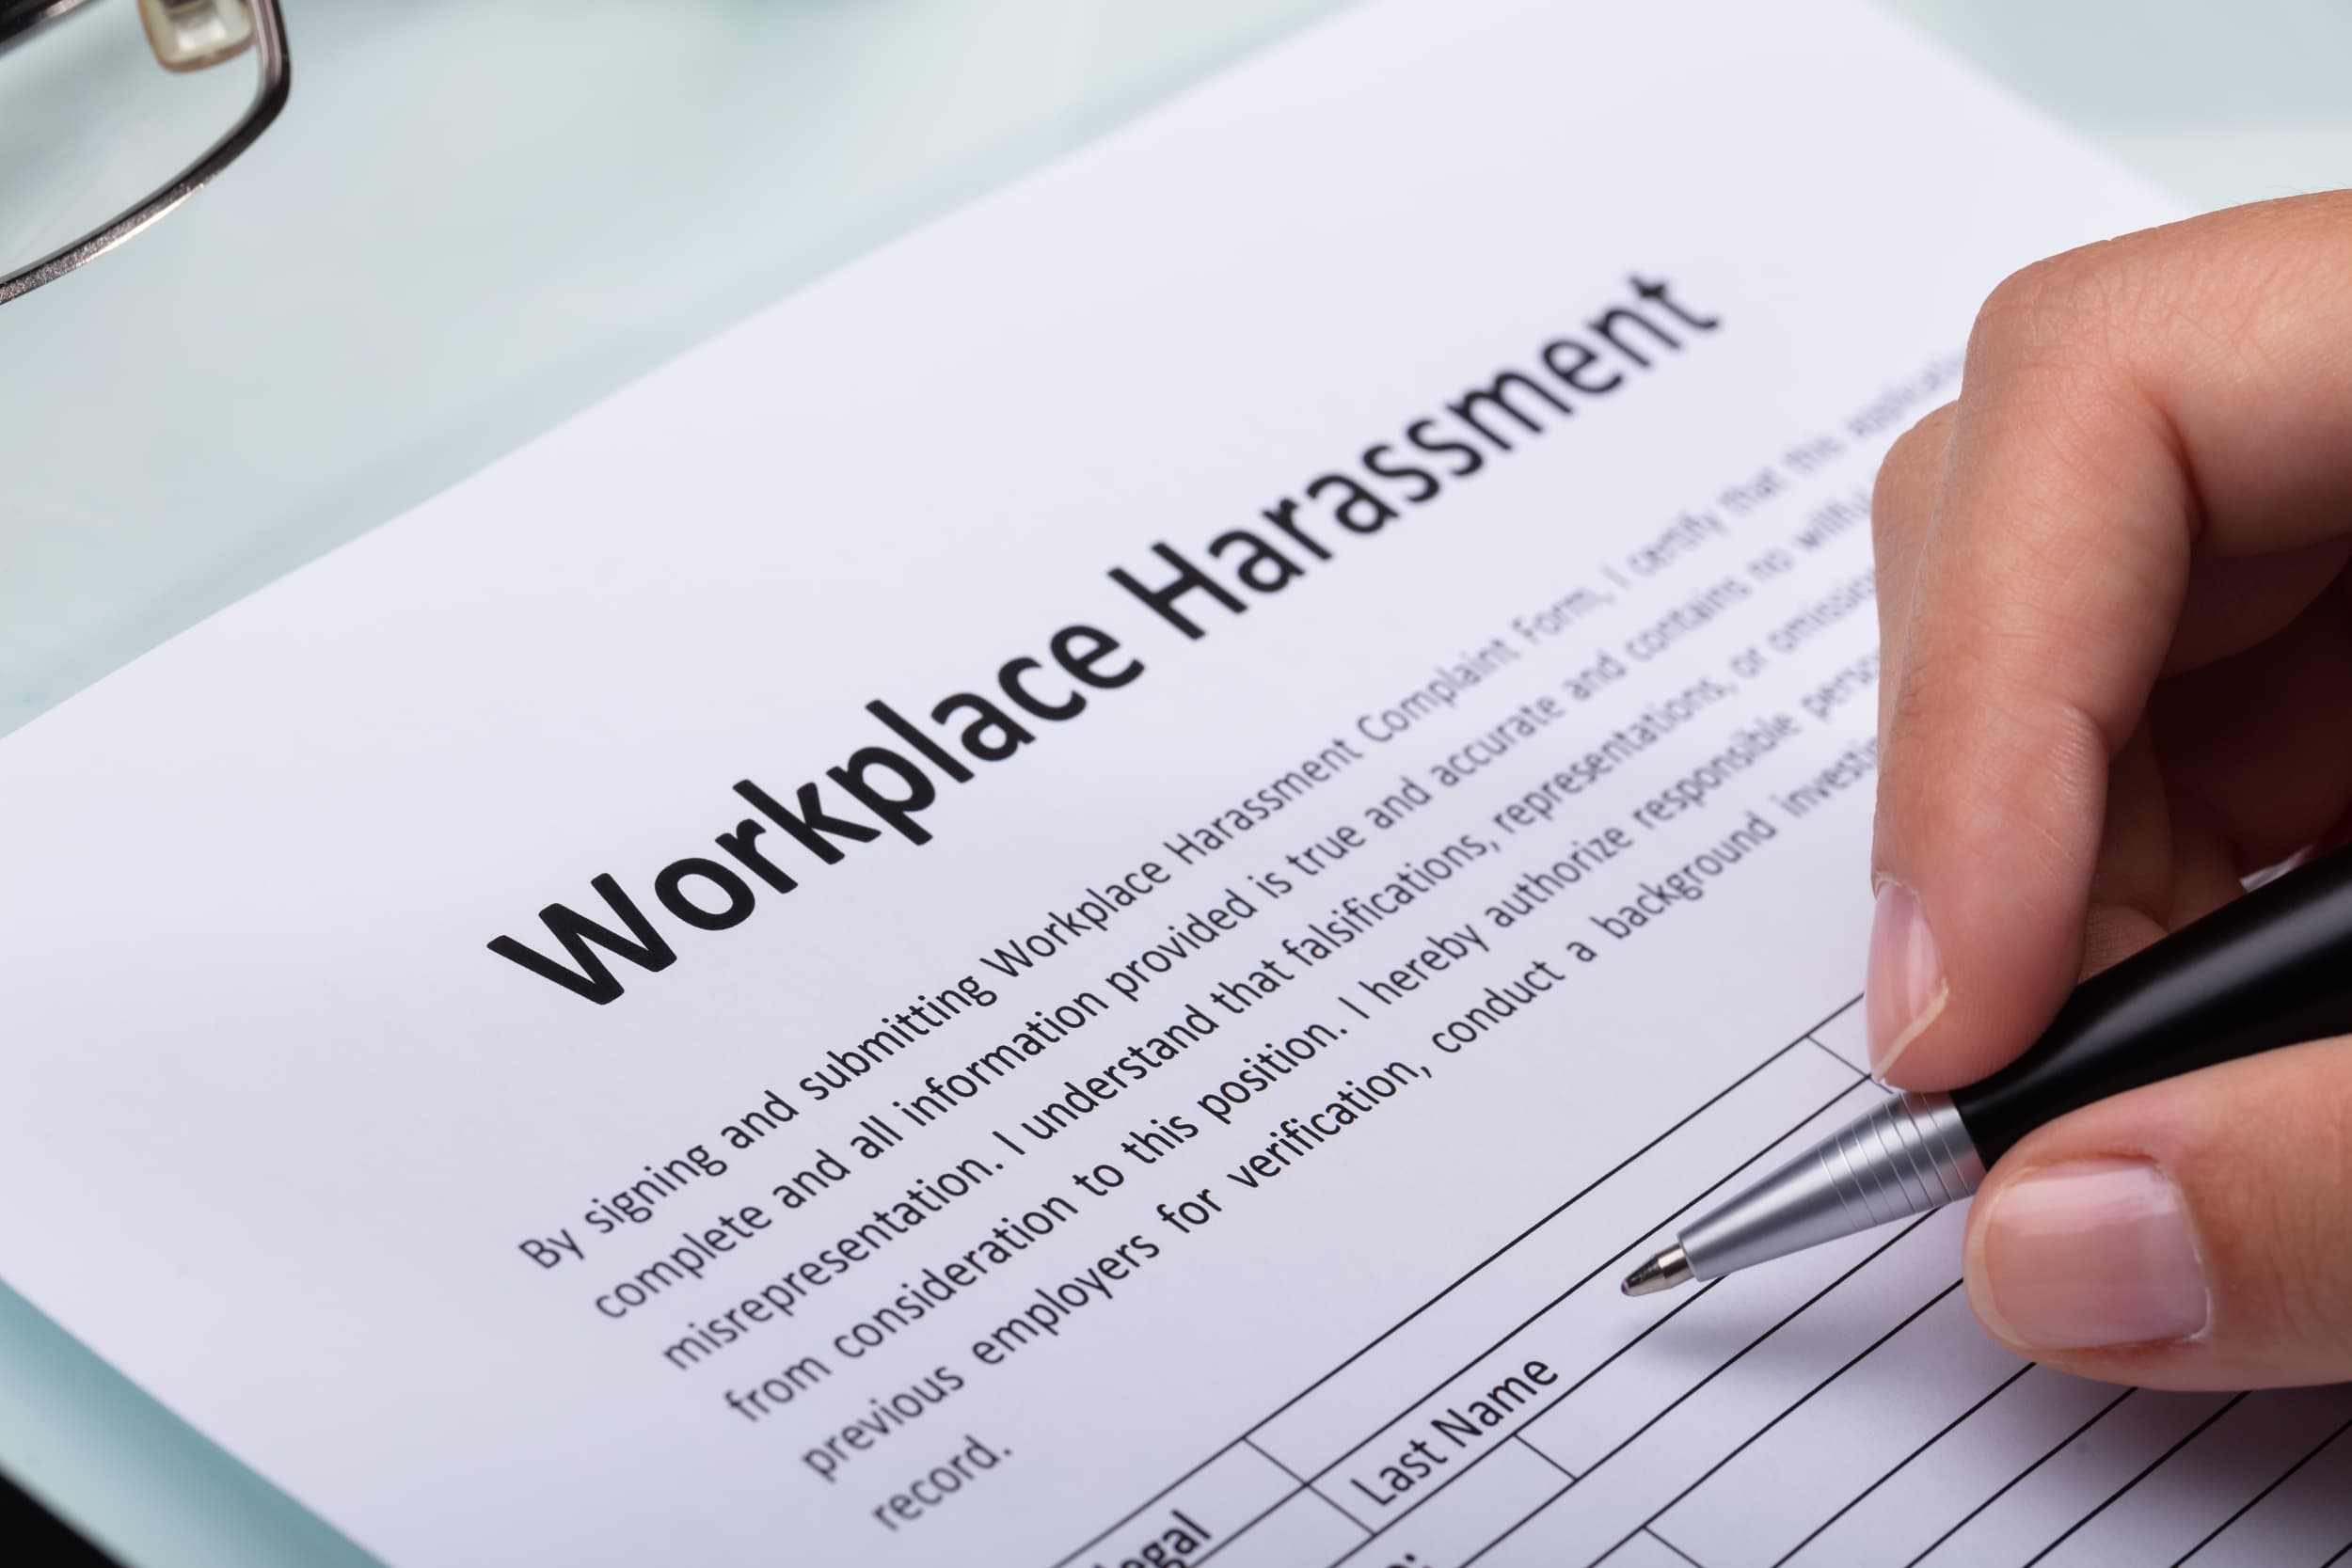 Compliance Training Online Cal/OSHA Sexual Harassment Prevention Training for Supervisors course